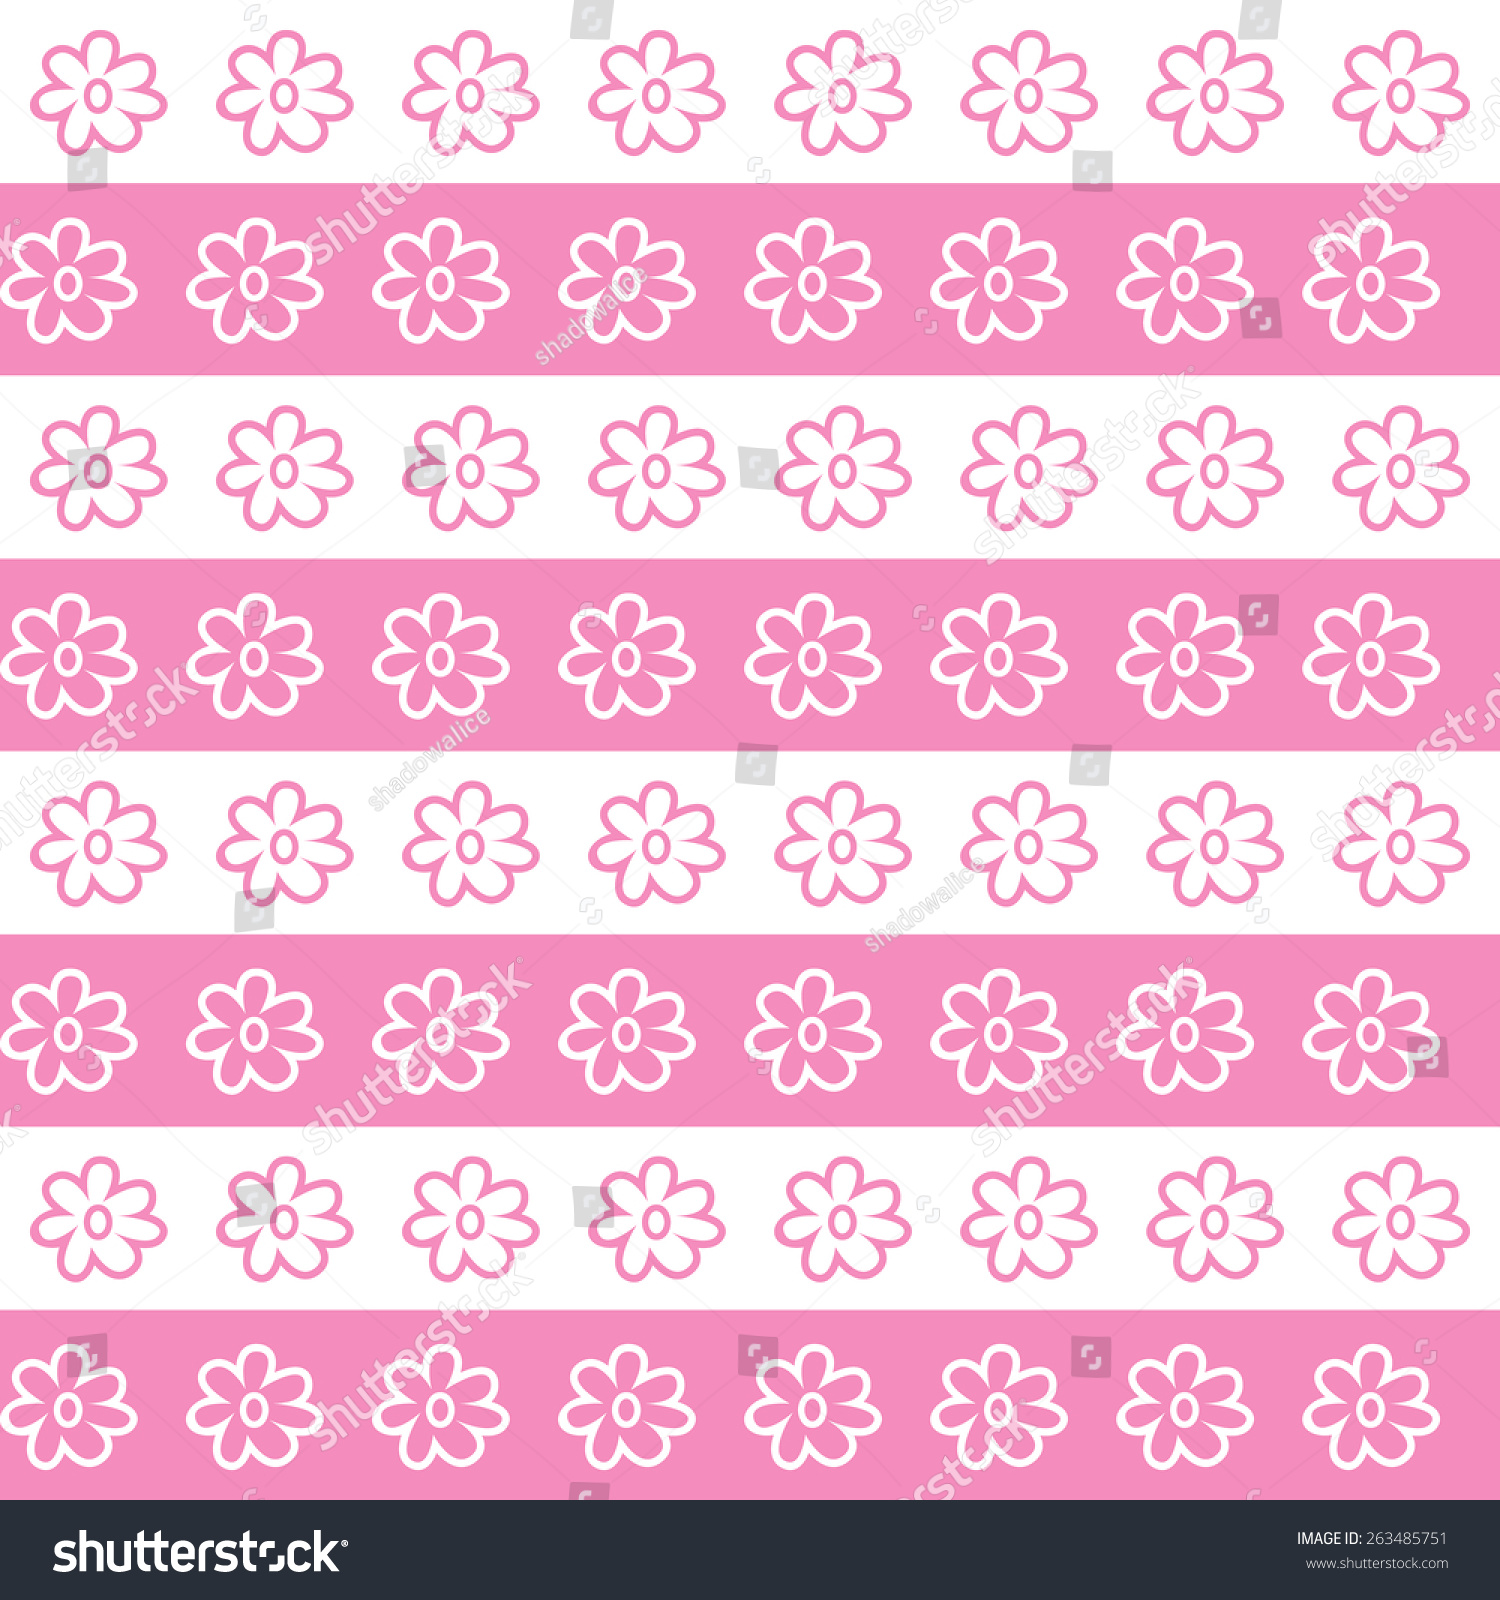 Pink White Flower Wallpaper Great Any Stock Vector 263485751